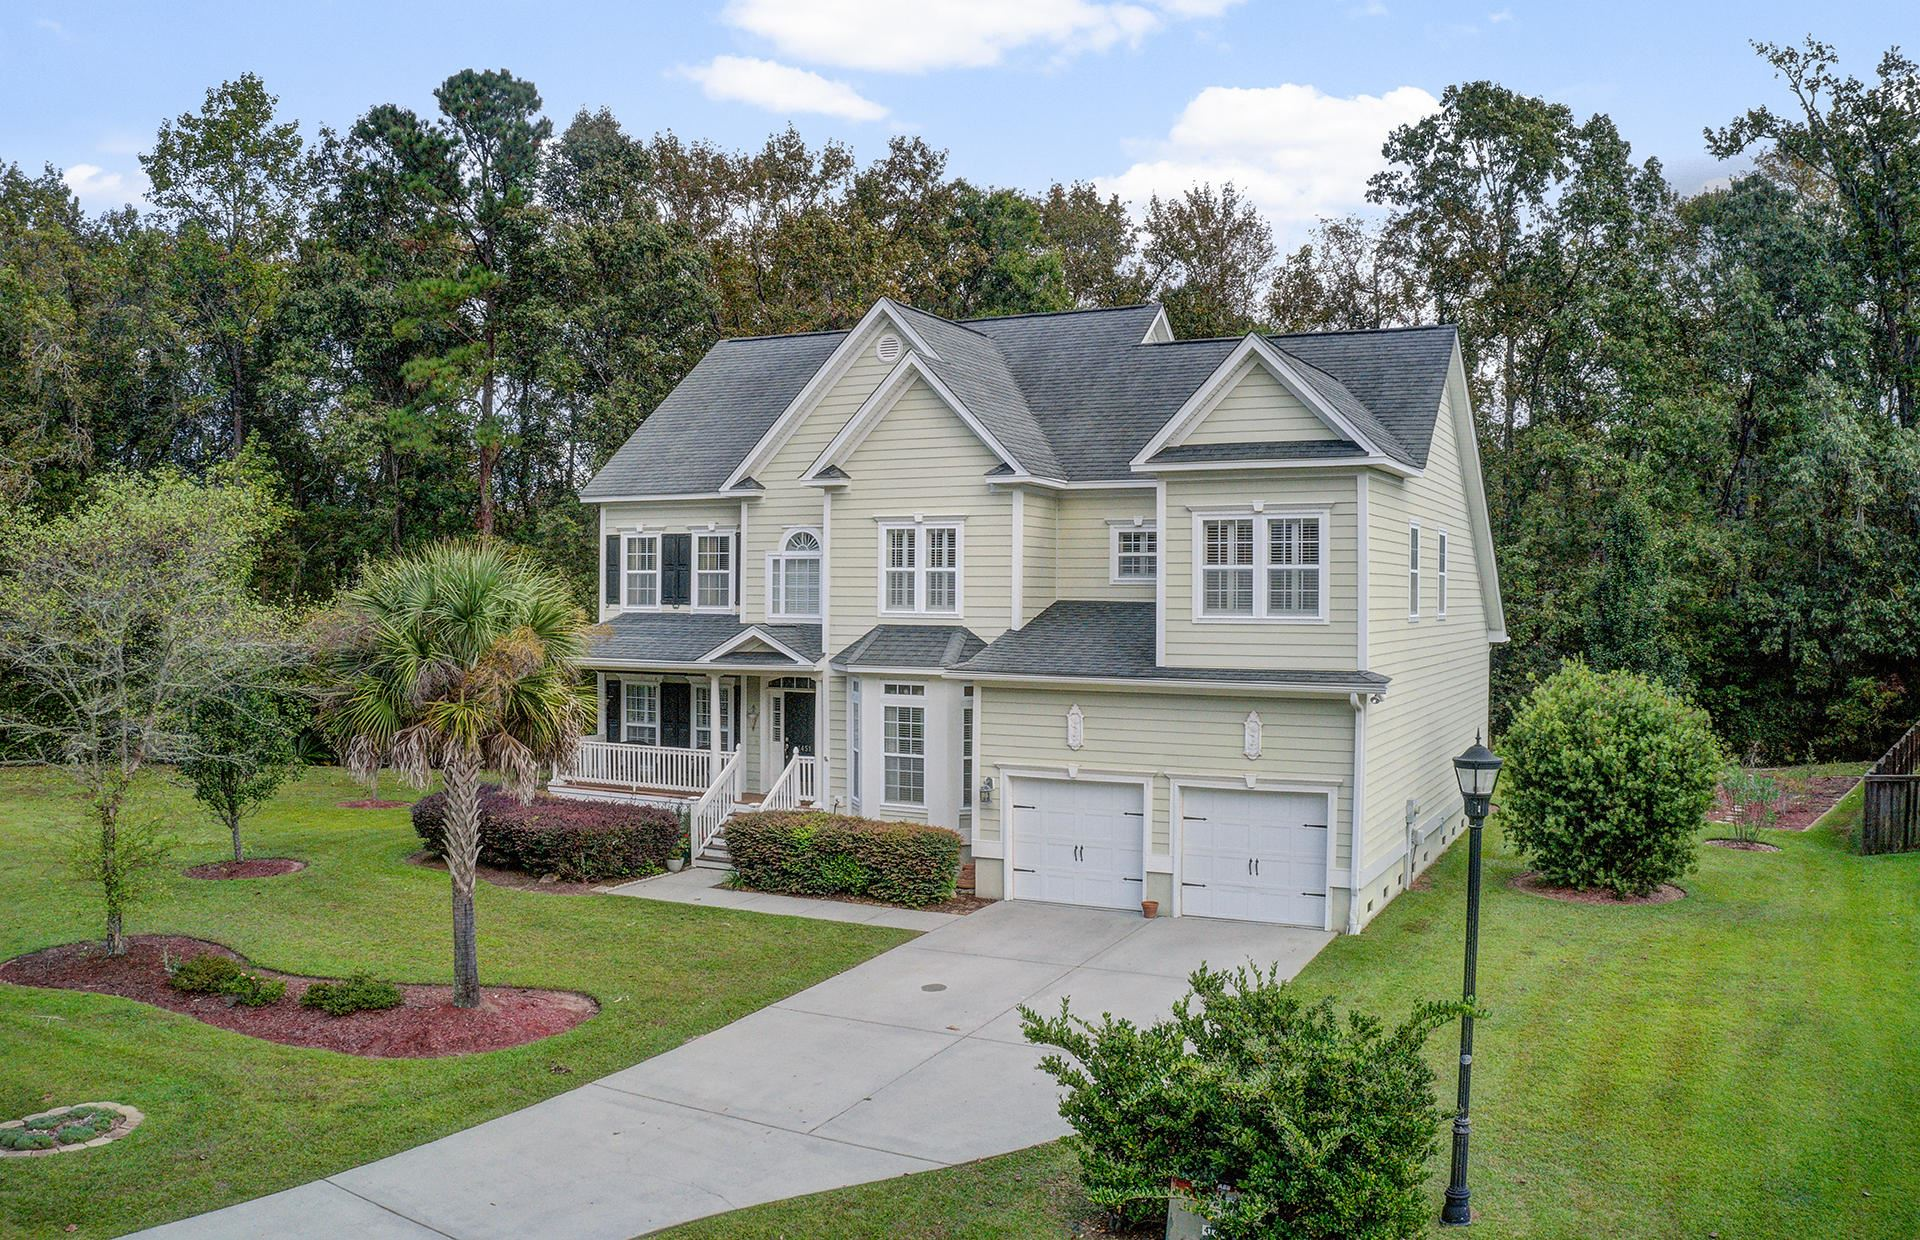 Photo of 1451 Gator Trak, Charleston, SC 29414 (MLS # 20029325)